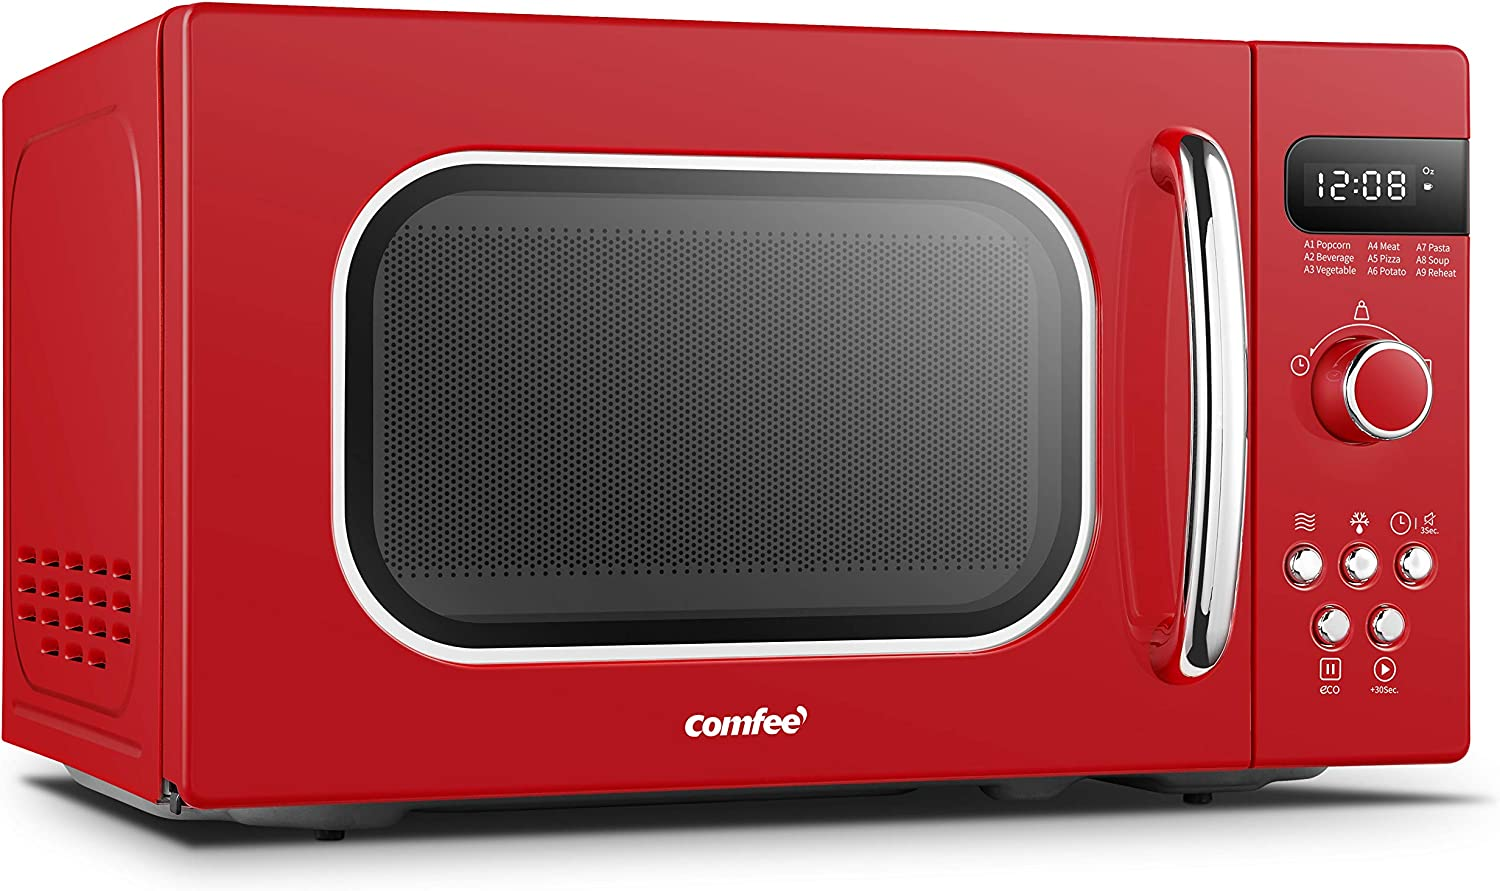 COMFEE AM720C2RA-R Retro Style Countertop Microwave Oven with 9 Auto Menus Position-Memory Turntable, Eco Mode, and Sound On/Off (Passionate ...